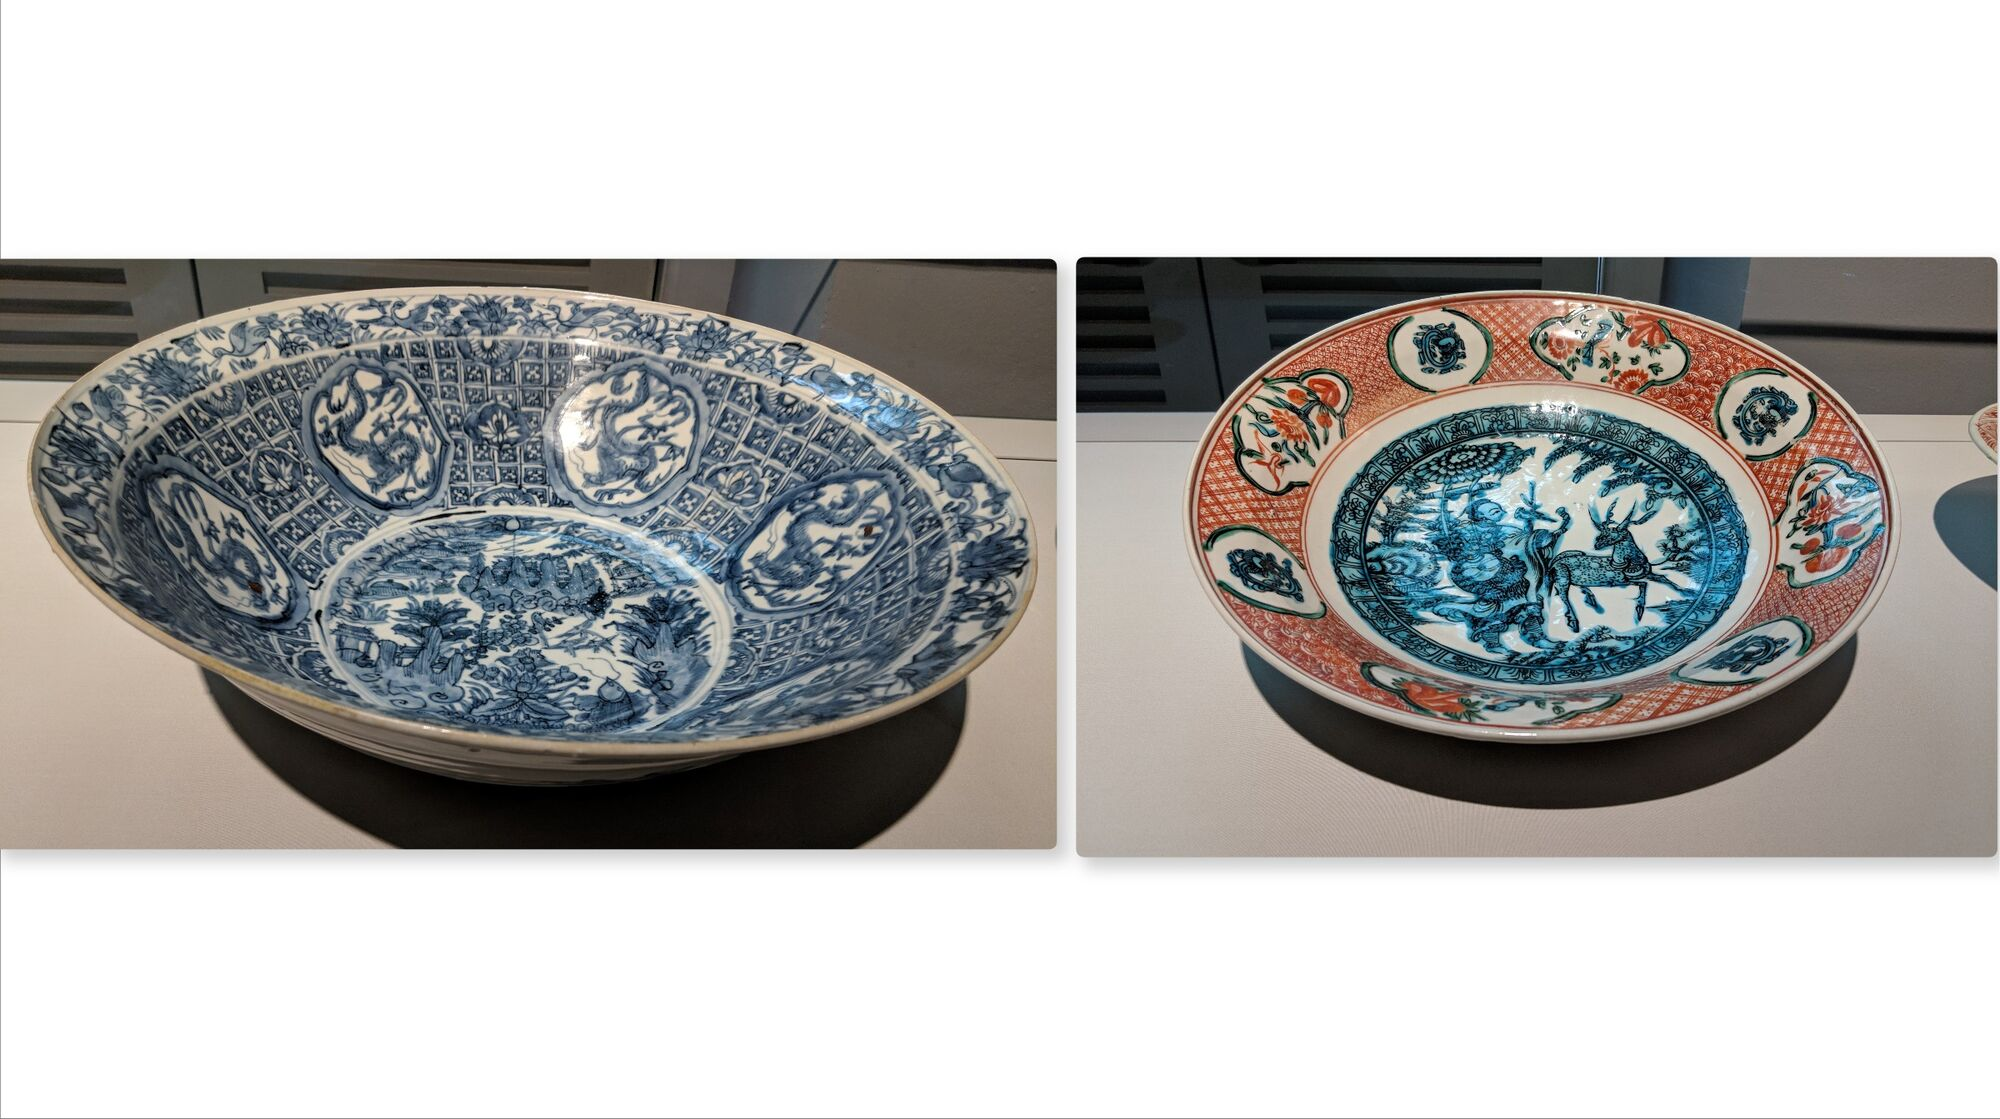 Breathtaking designs on the ceramics from the Tang Shipwreck collection